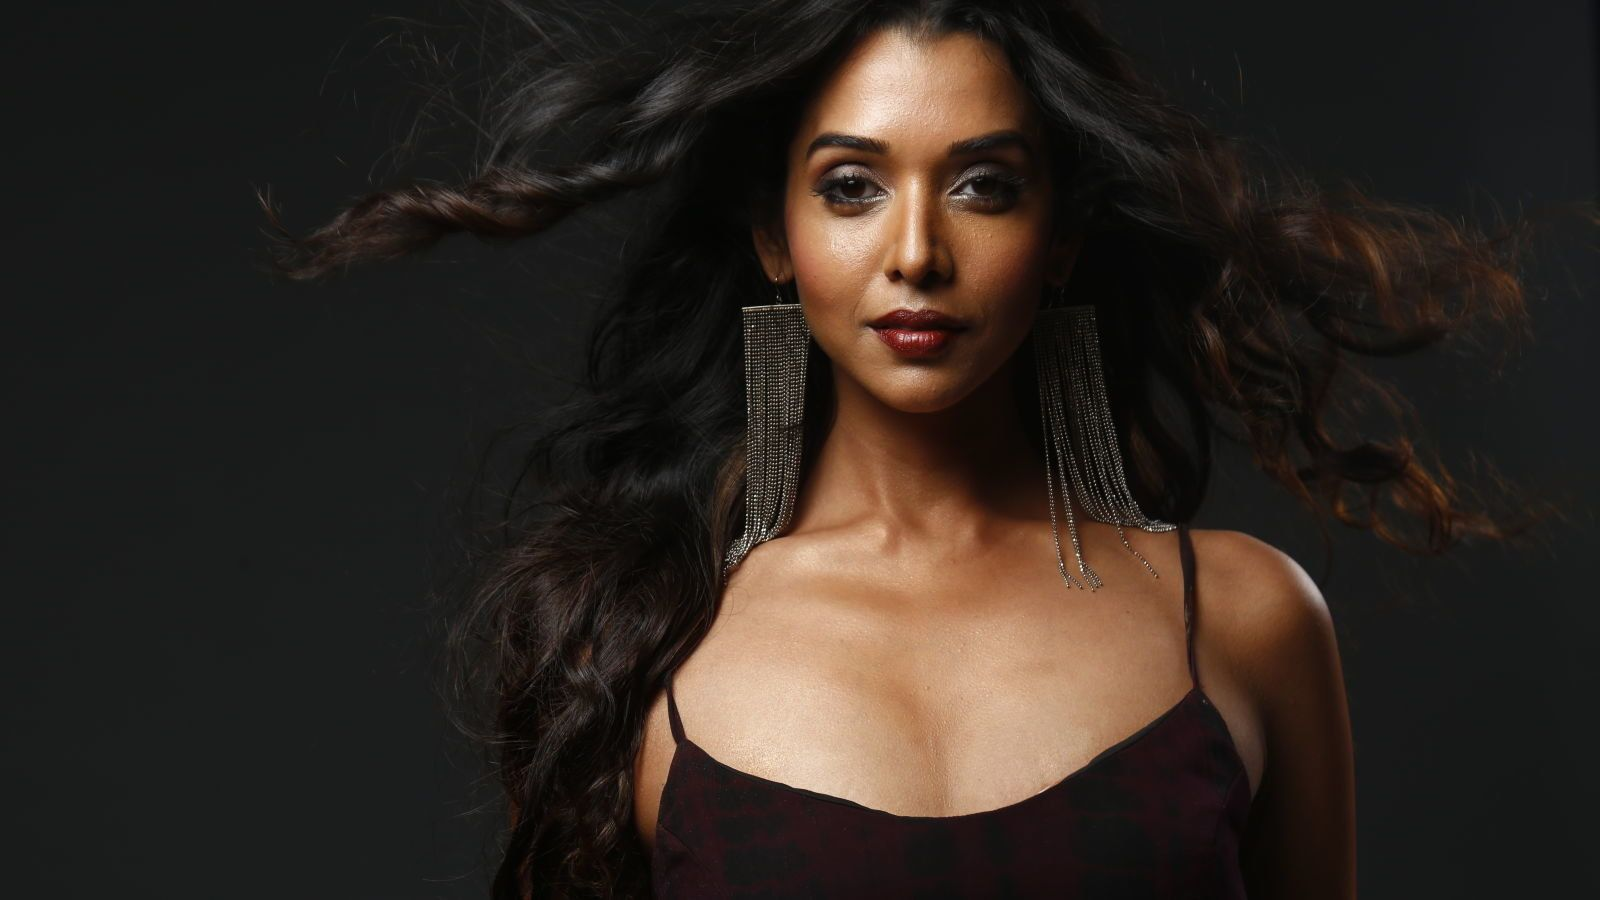 Padmaavat Actress Anupriya Goenka Roped In For Hrithik Roshan And Tiger Shroff's Action Entertainer